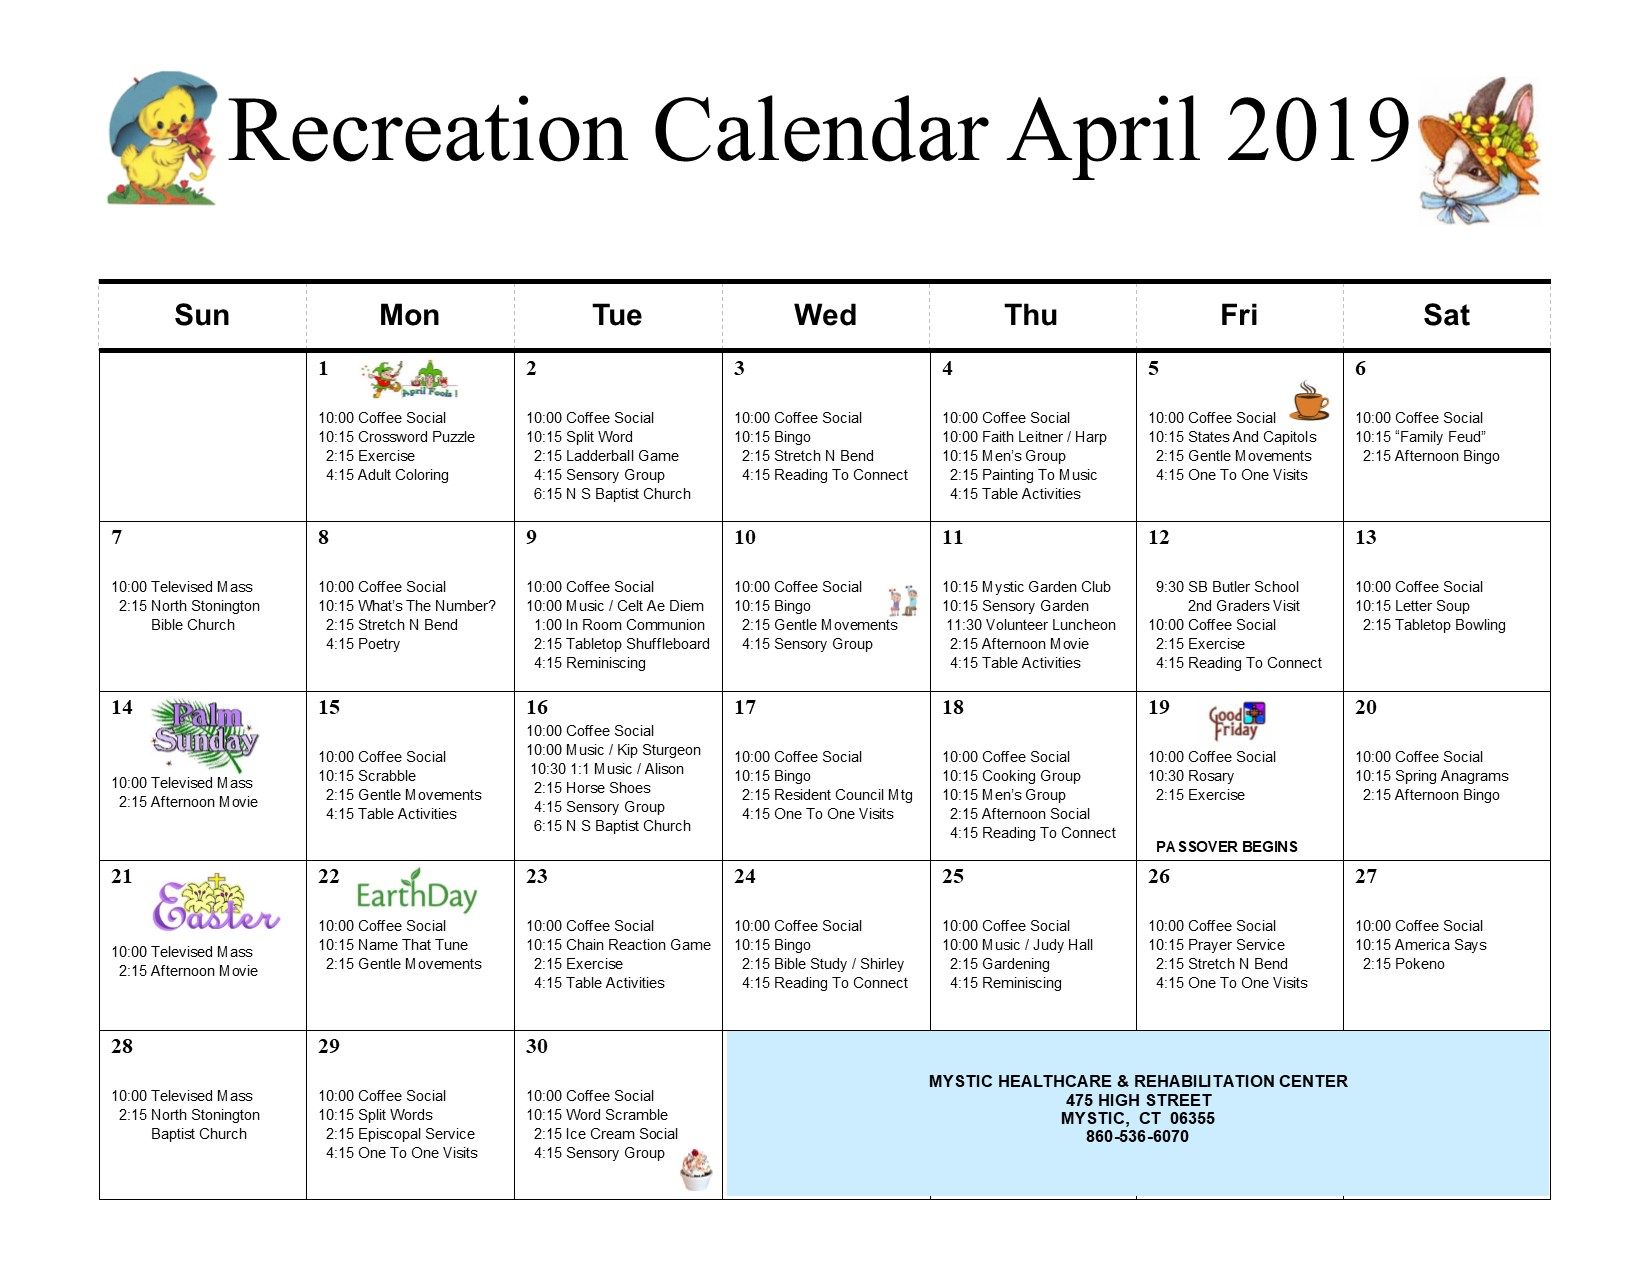 Mystic Healthcare Recreation Calendar April 2019 Mystic